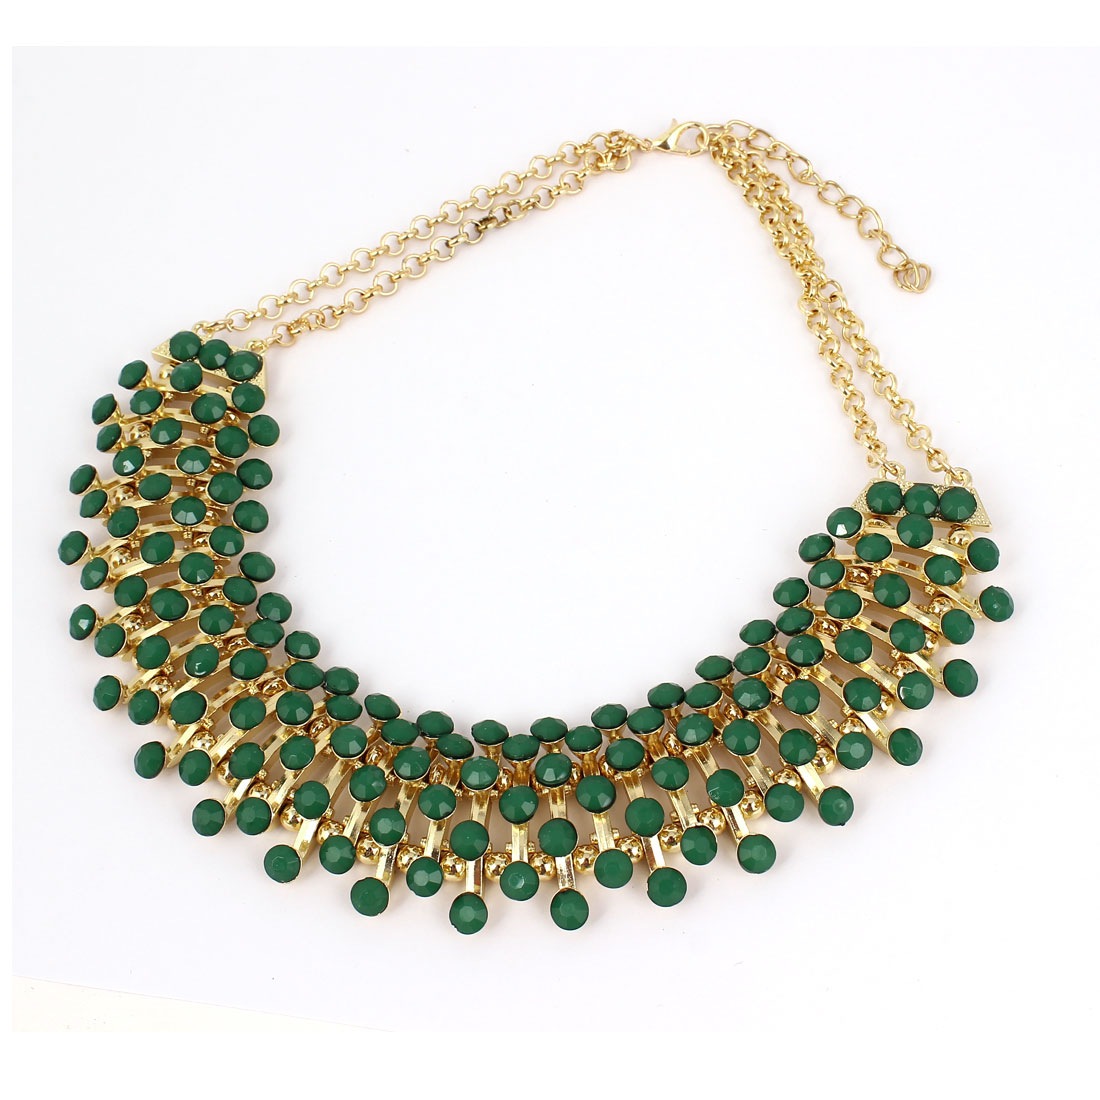 Ladies Acrylic Beads Decor Statement Chunky Collar Chain Bib Necklace Green